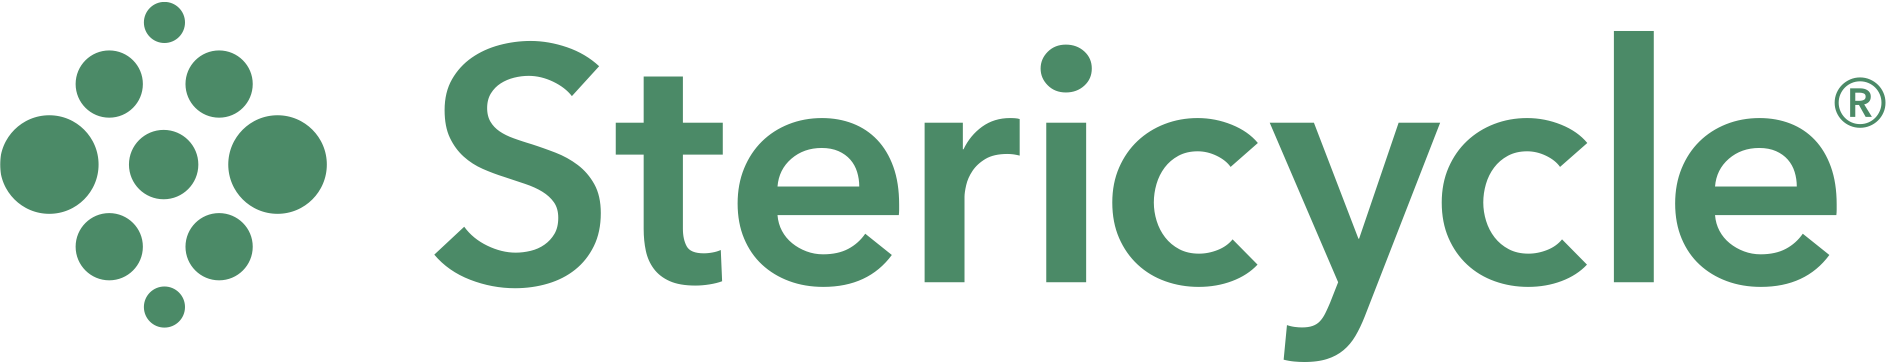 Stericycle Logo_2017_CMYK.png